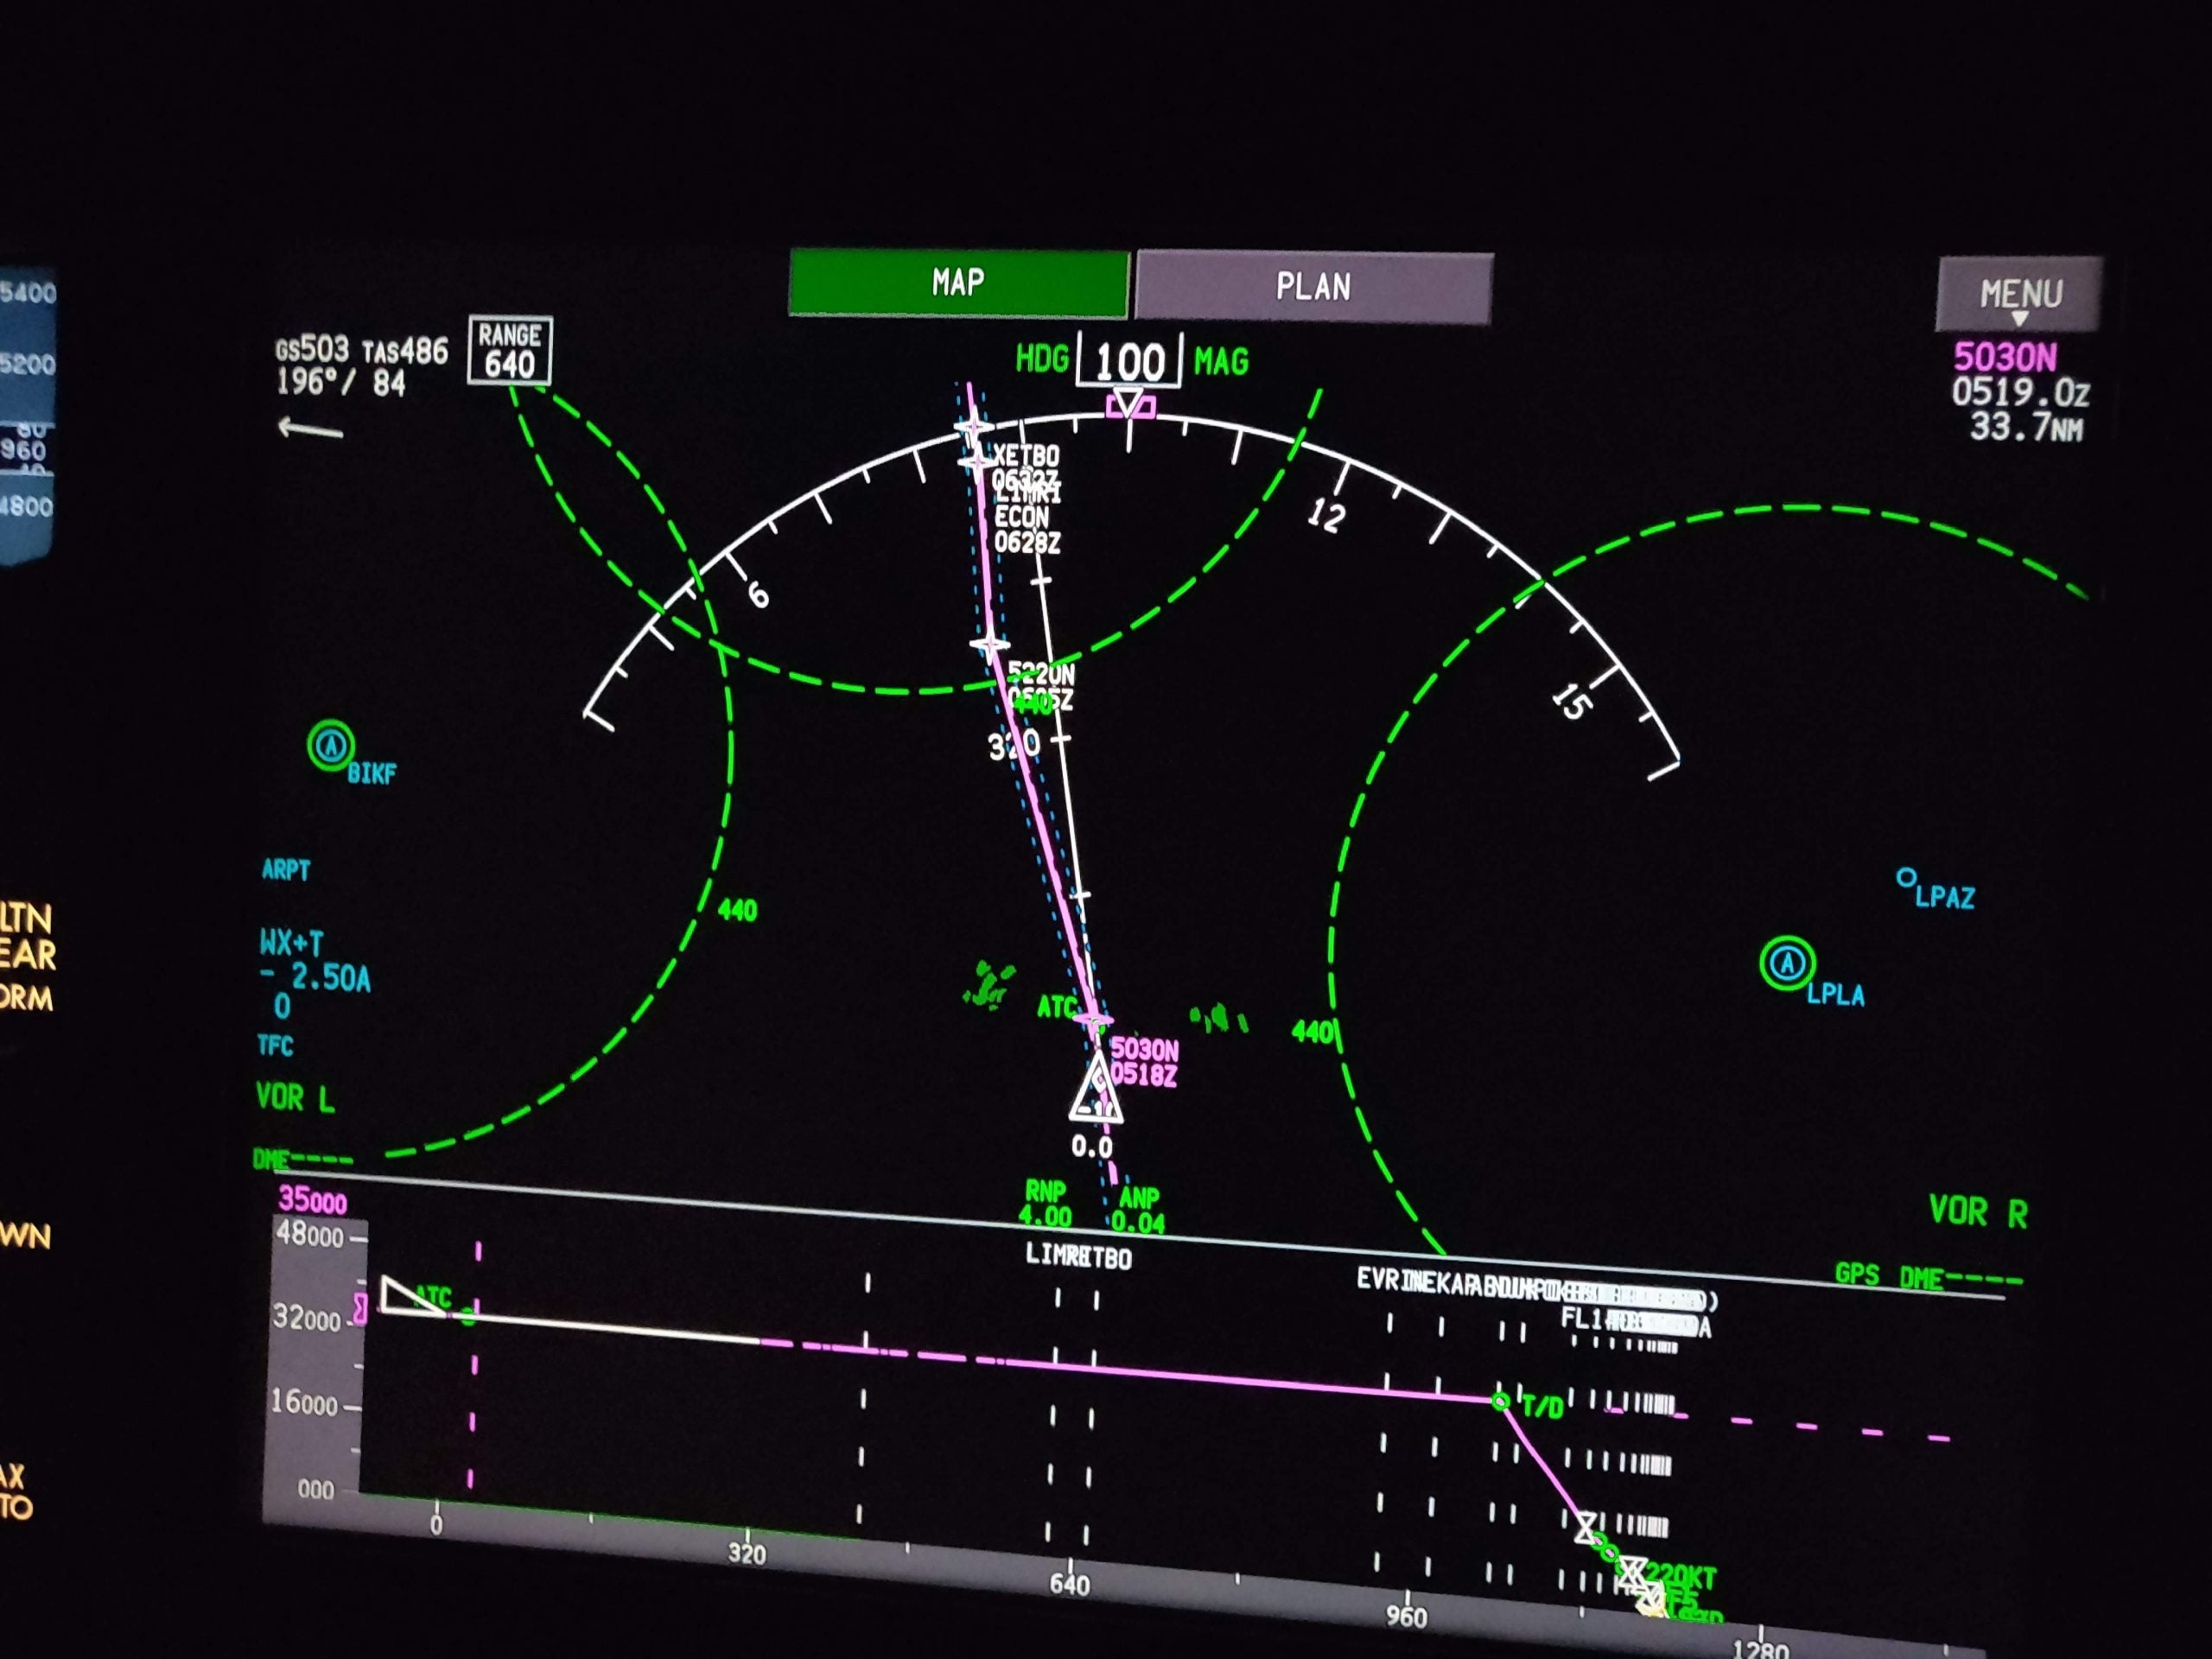 Flight planning: The unseen detail behind every flight - The Points Guy